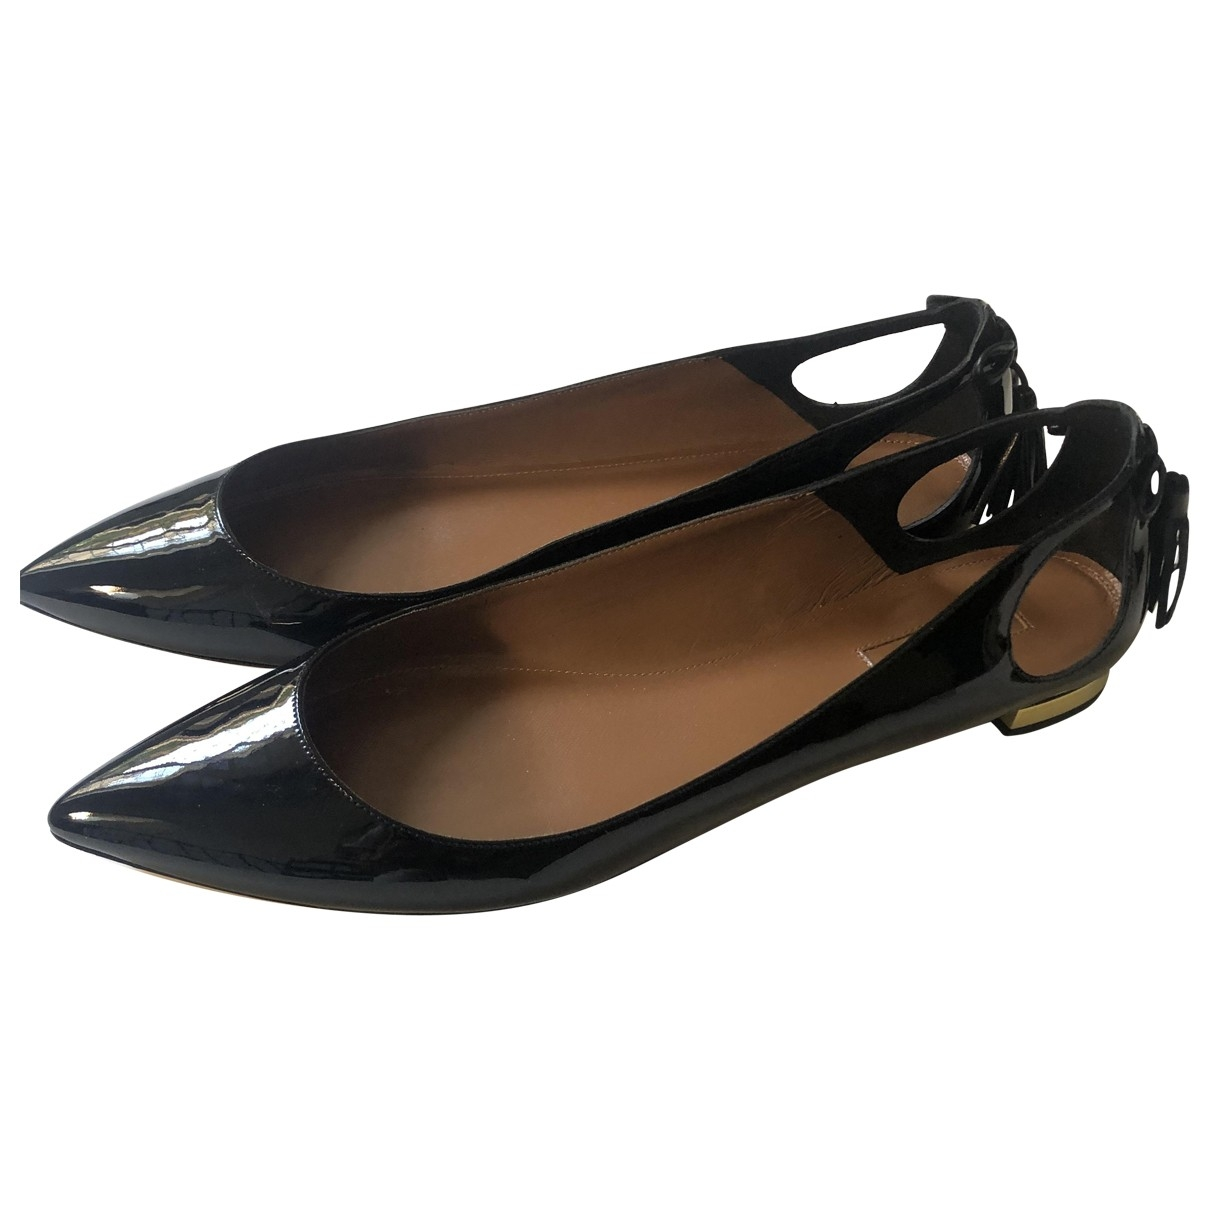 Aquazzura Christy Black Patent leather Ballet flats for Women 40.5 EU